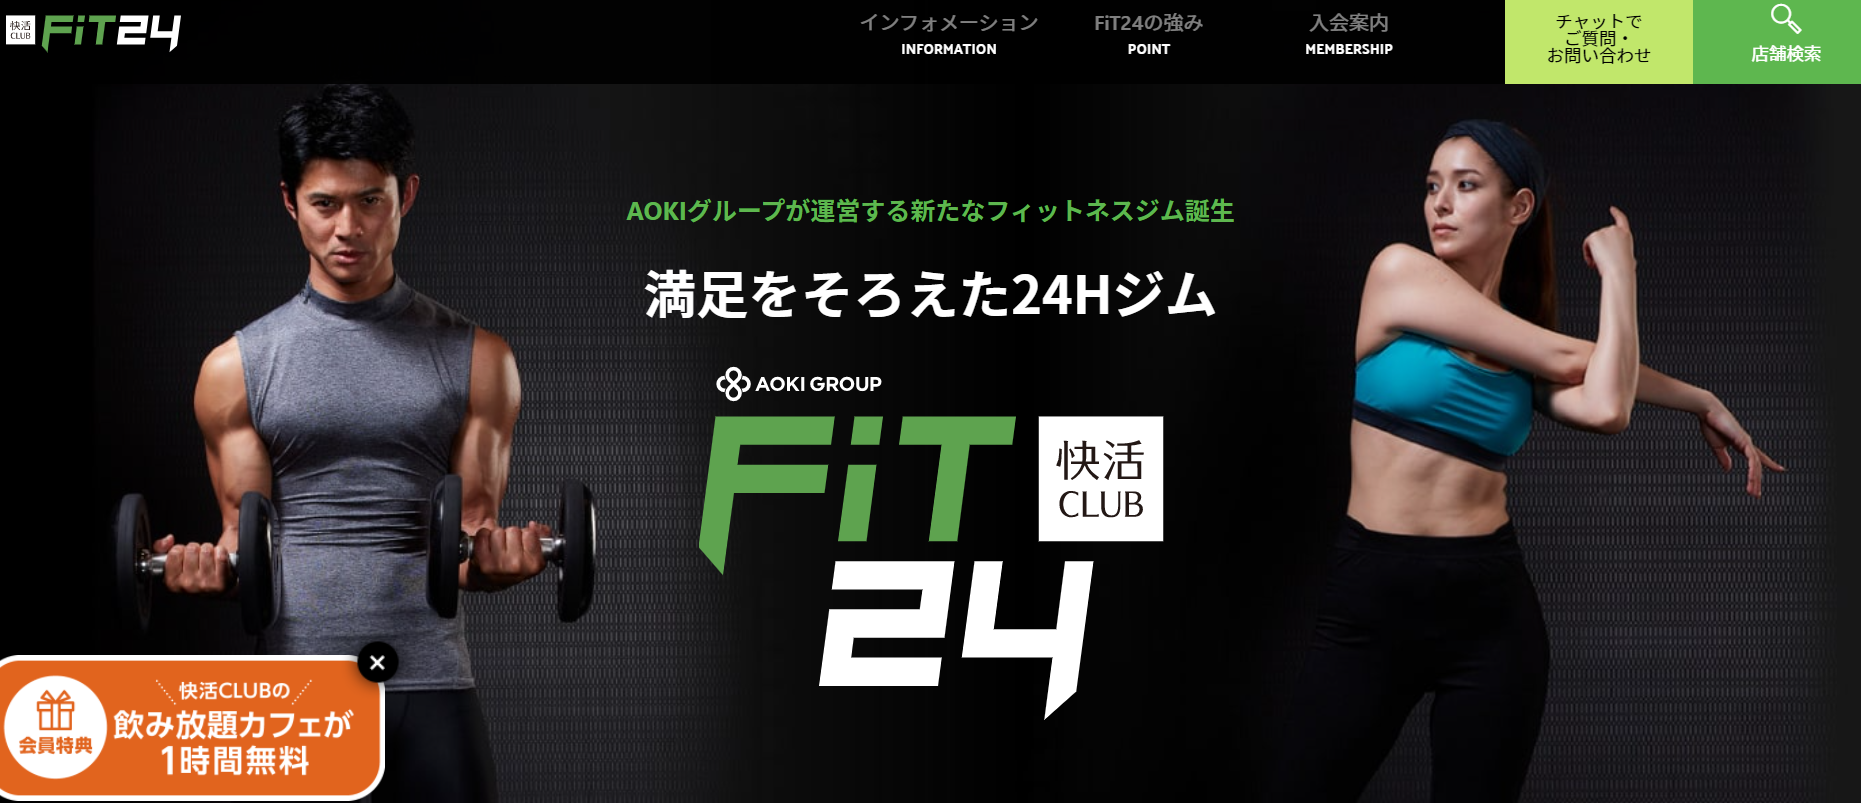 FiT(フィット)24